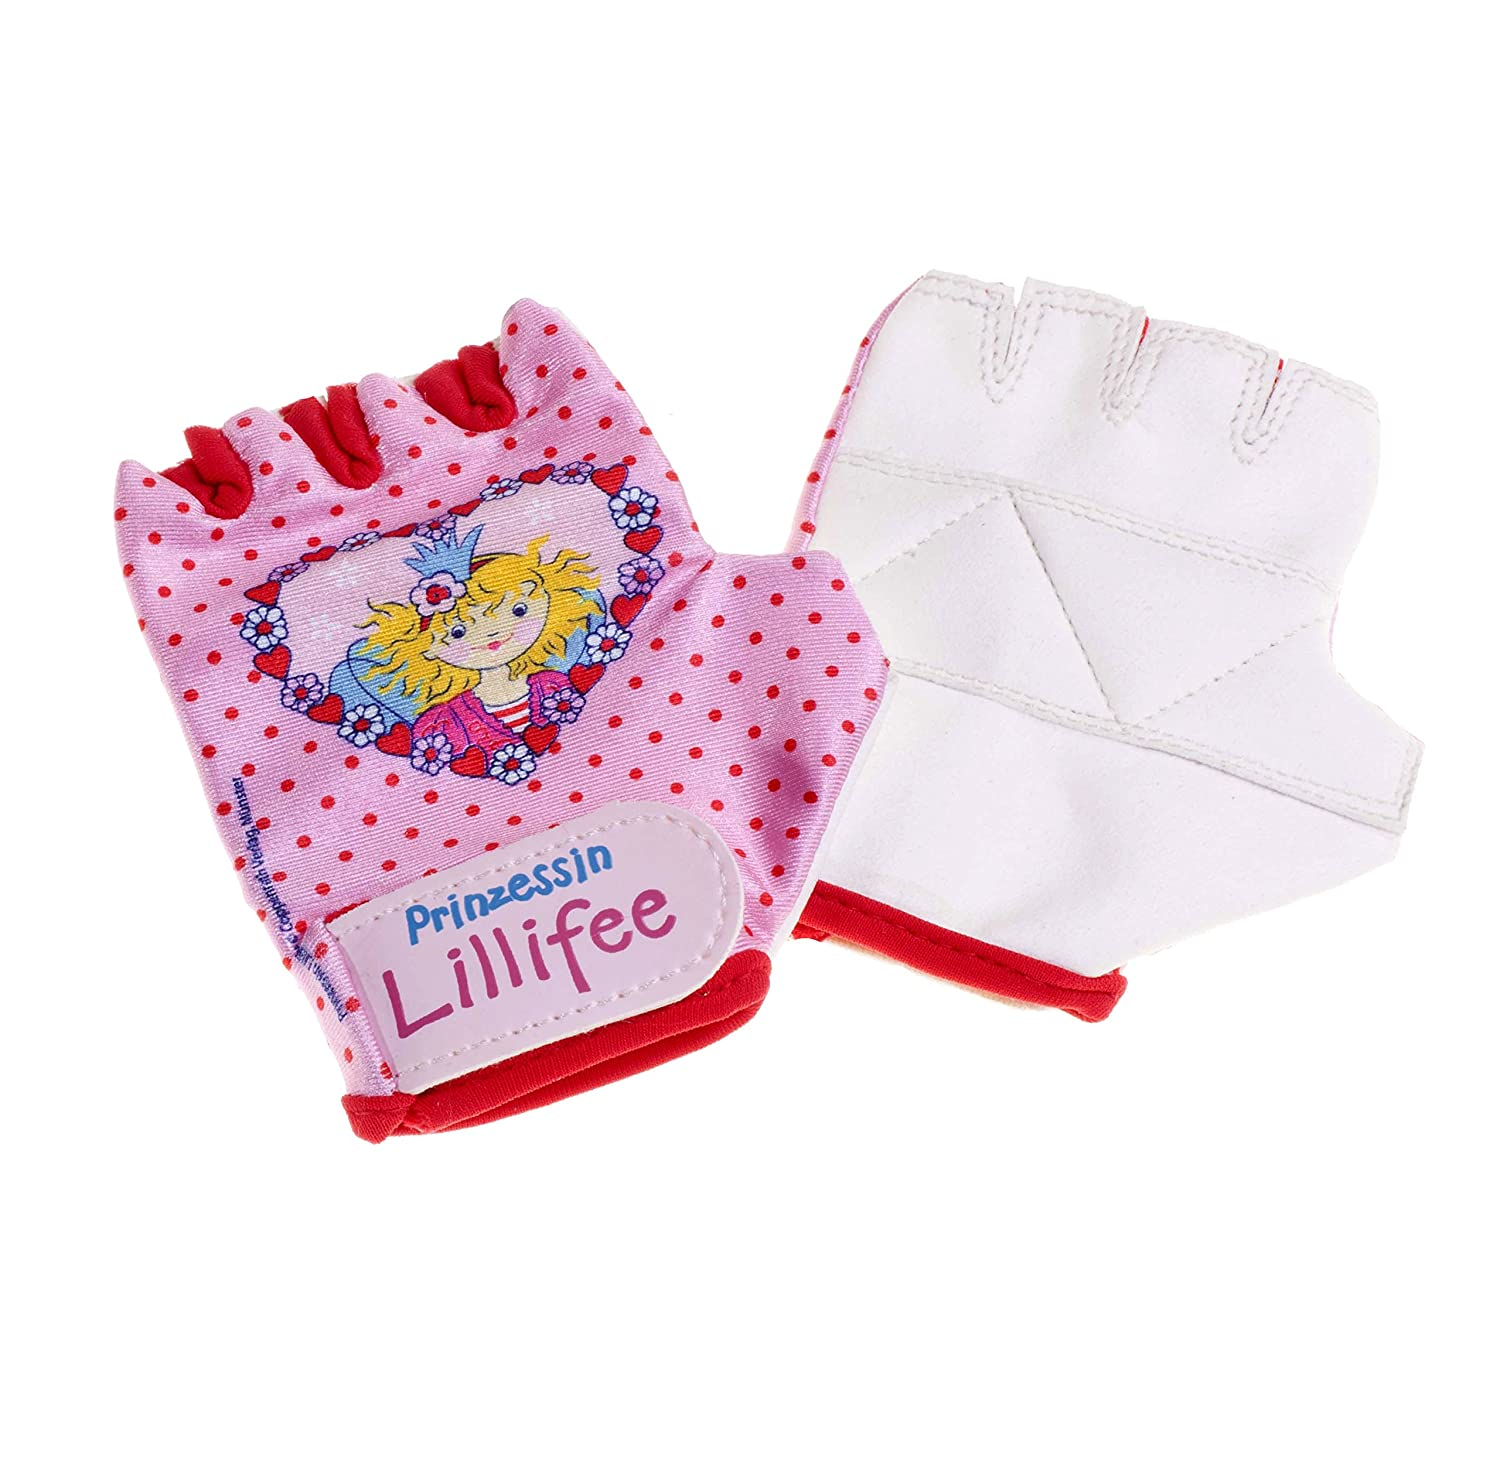 Bike Fashion Princesse Lillifee Sac de vélo Multicolore M CSnBf